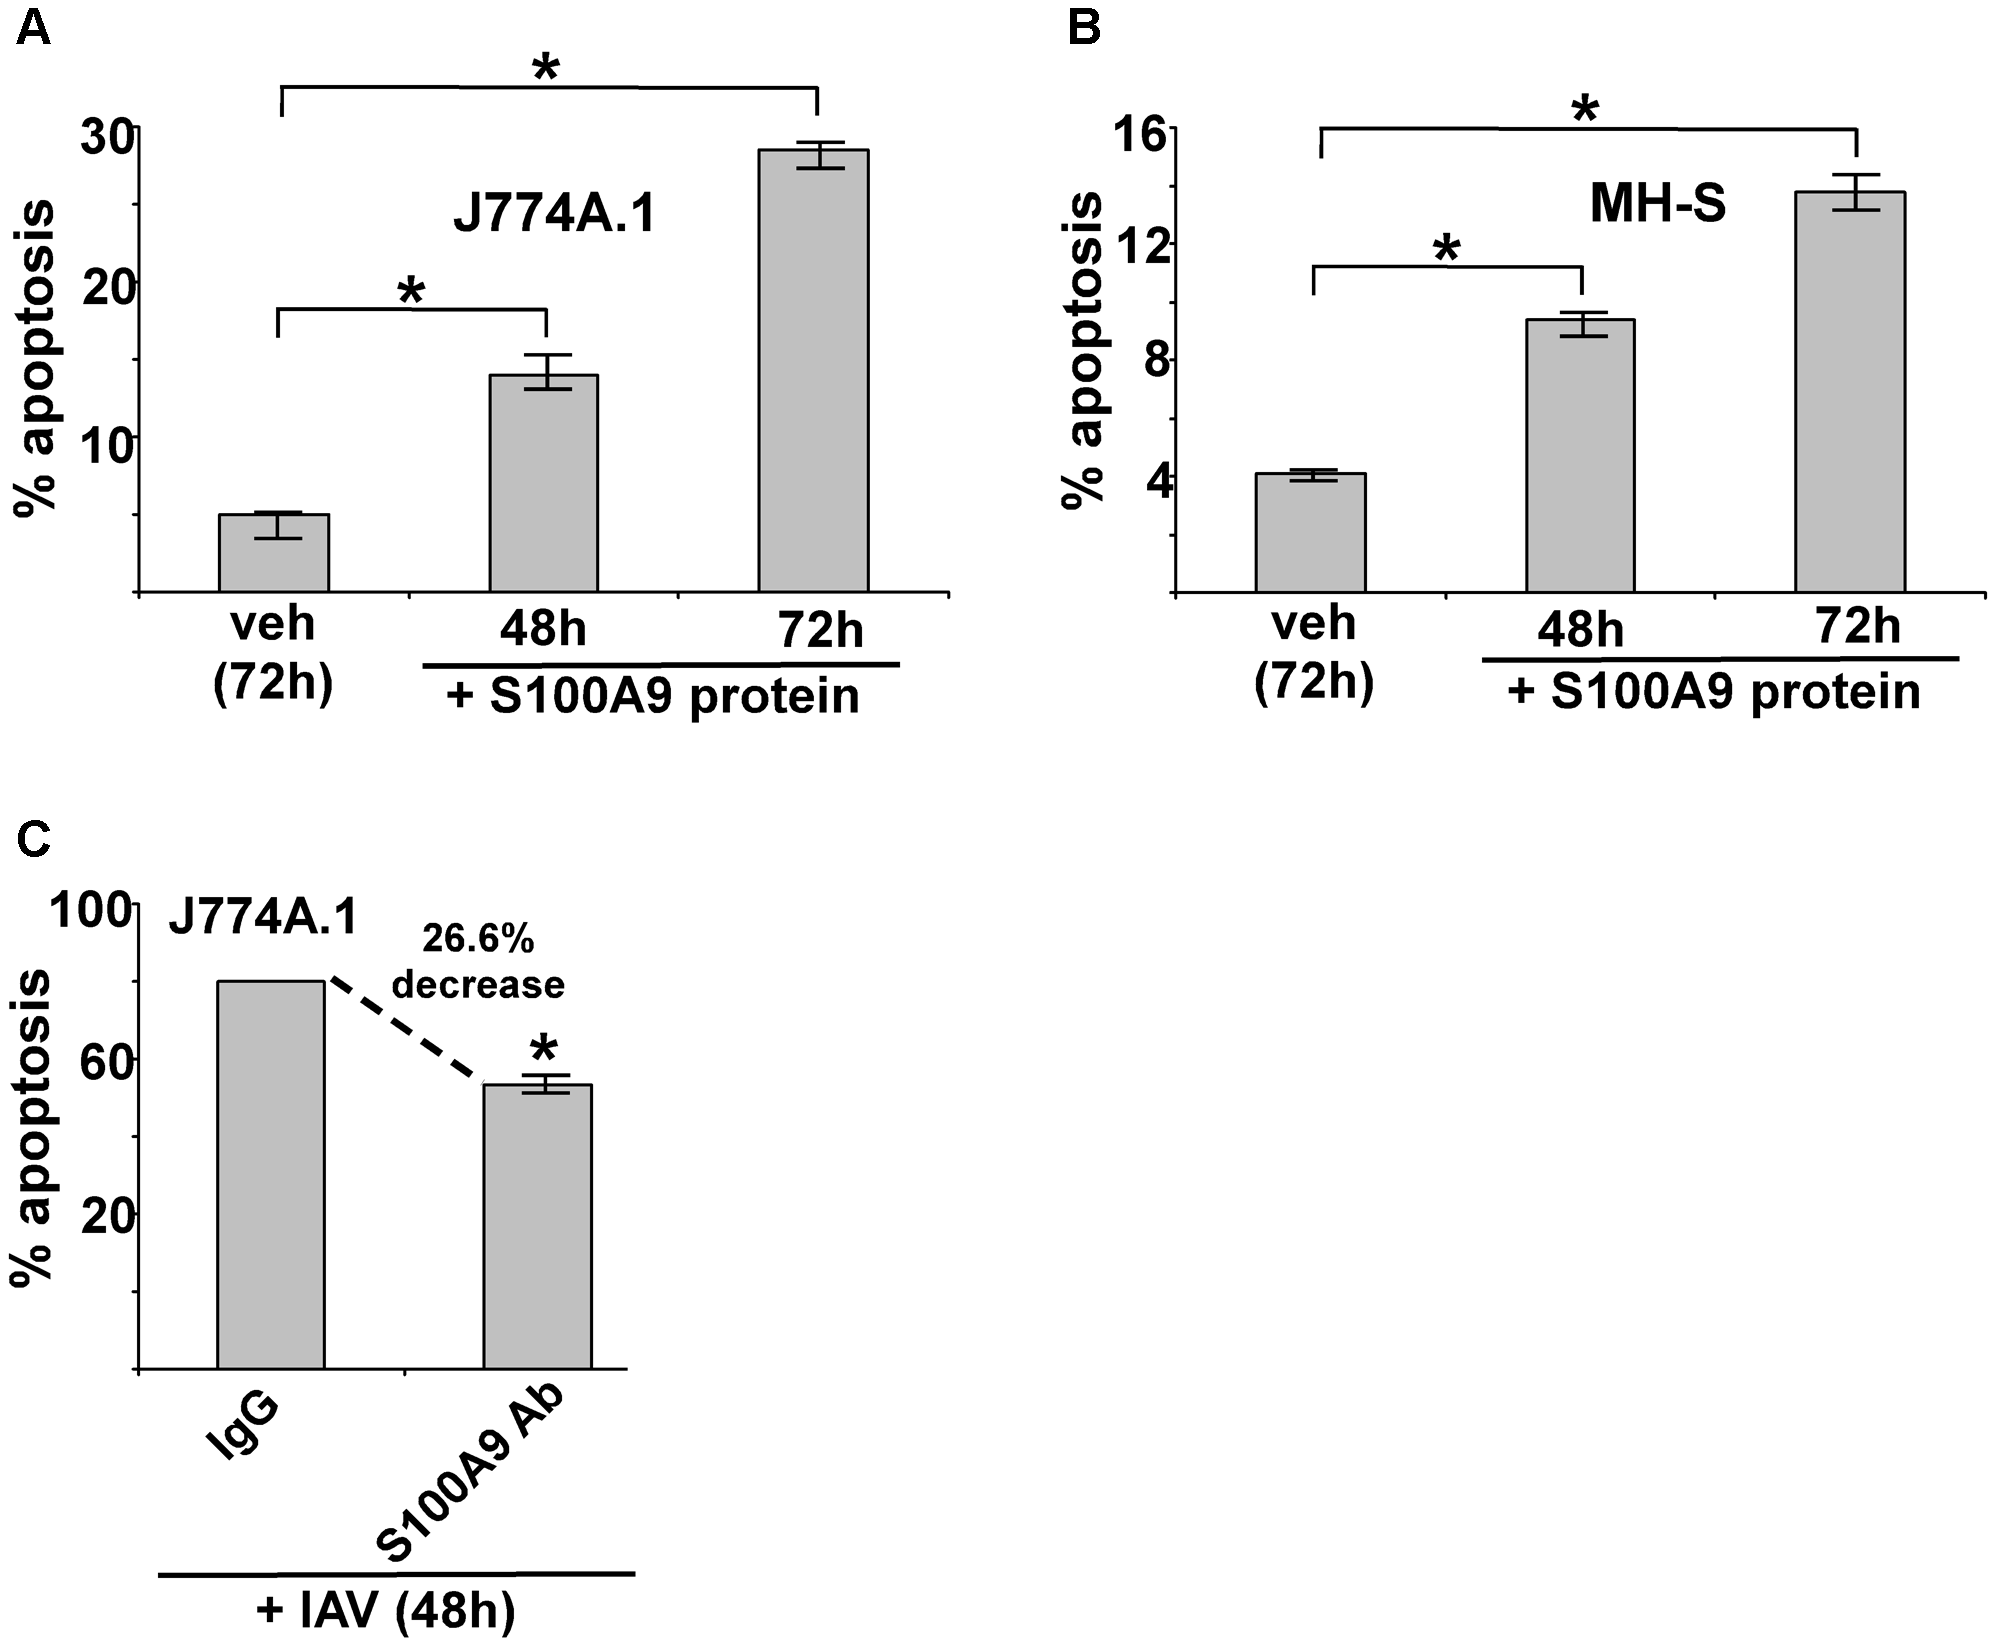 Extracellular S100A9 protein triggers apoptosis in macrophages and S100A9 regulates apoptosis during IAV infection.